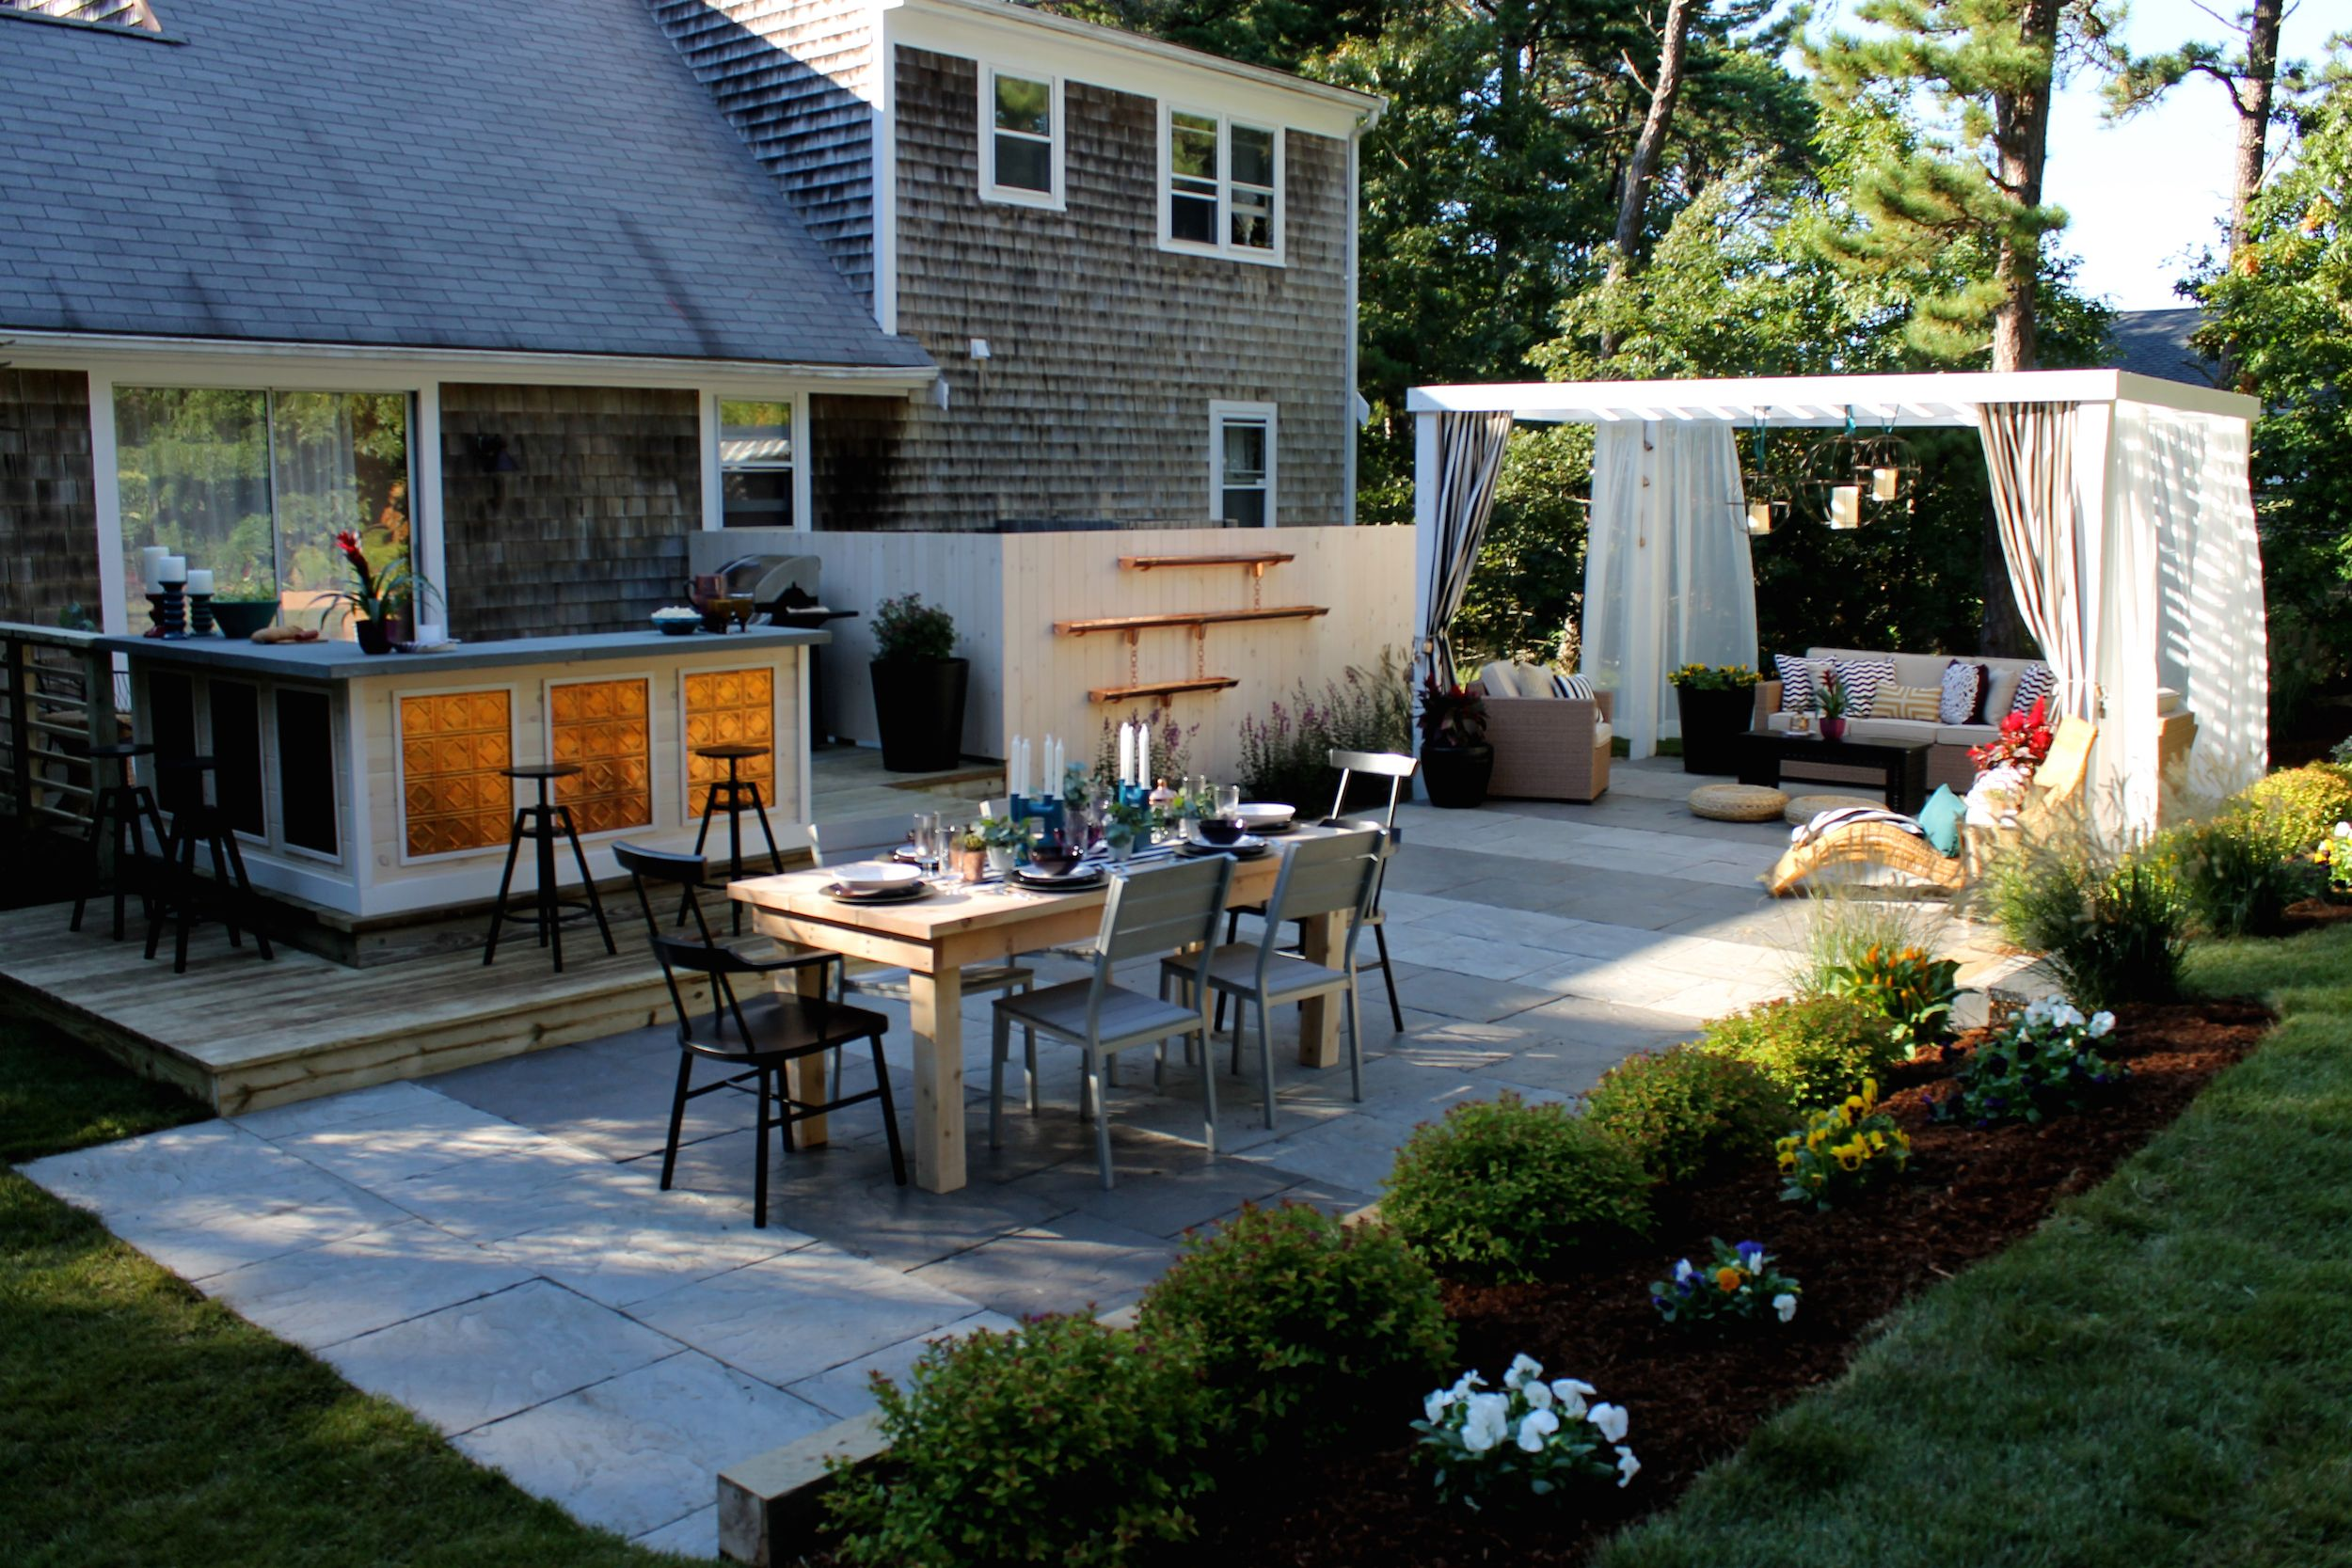 Landscaping ideas for a low maintenance yard & 17 Low Maintenance Landscaping Ideas \u2013 Easy Backyard Landscape ...